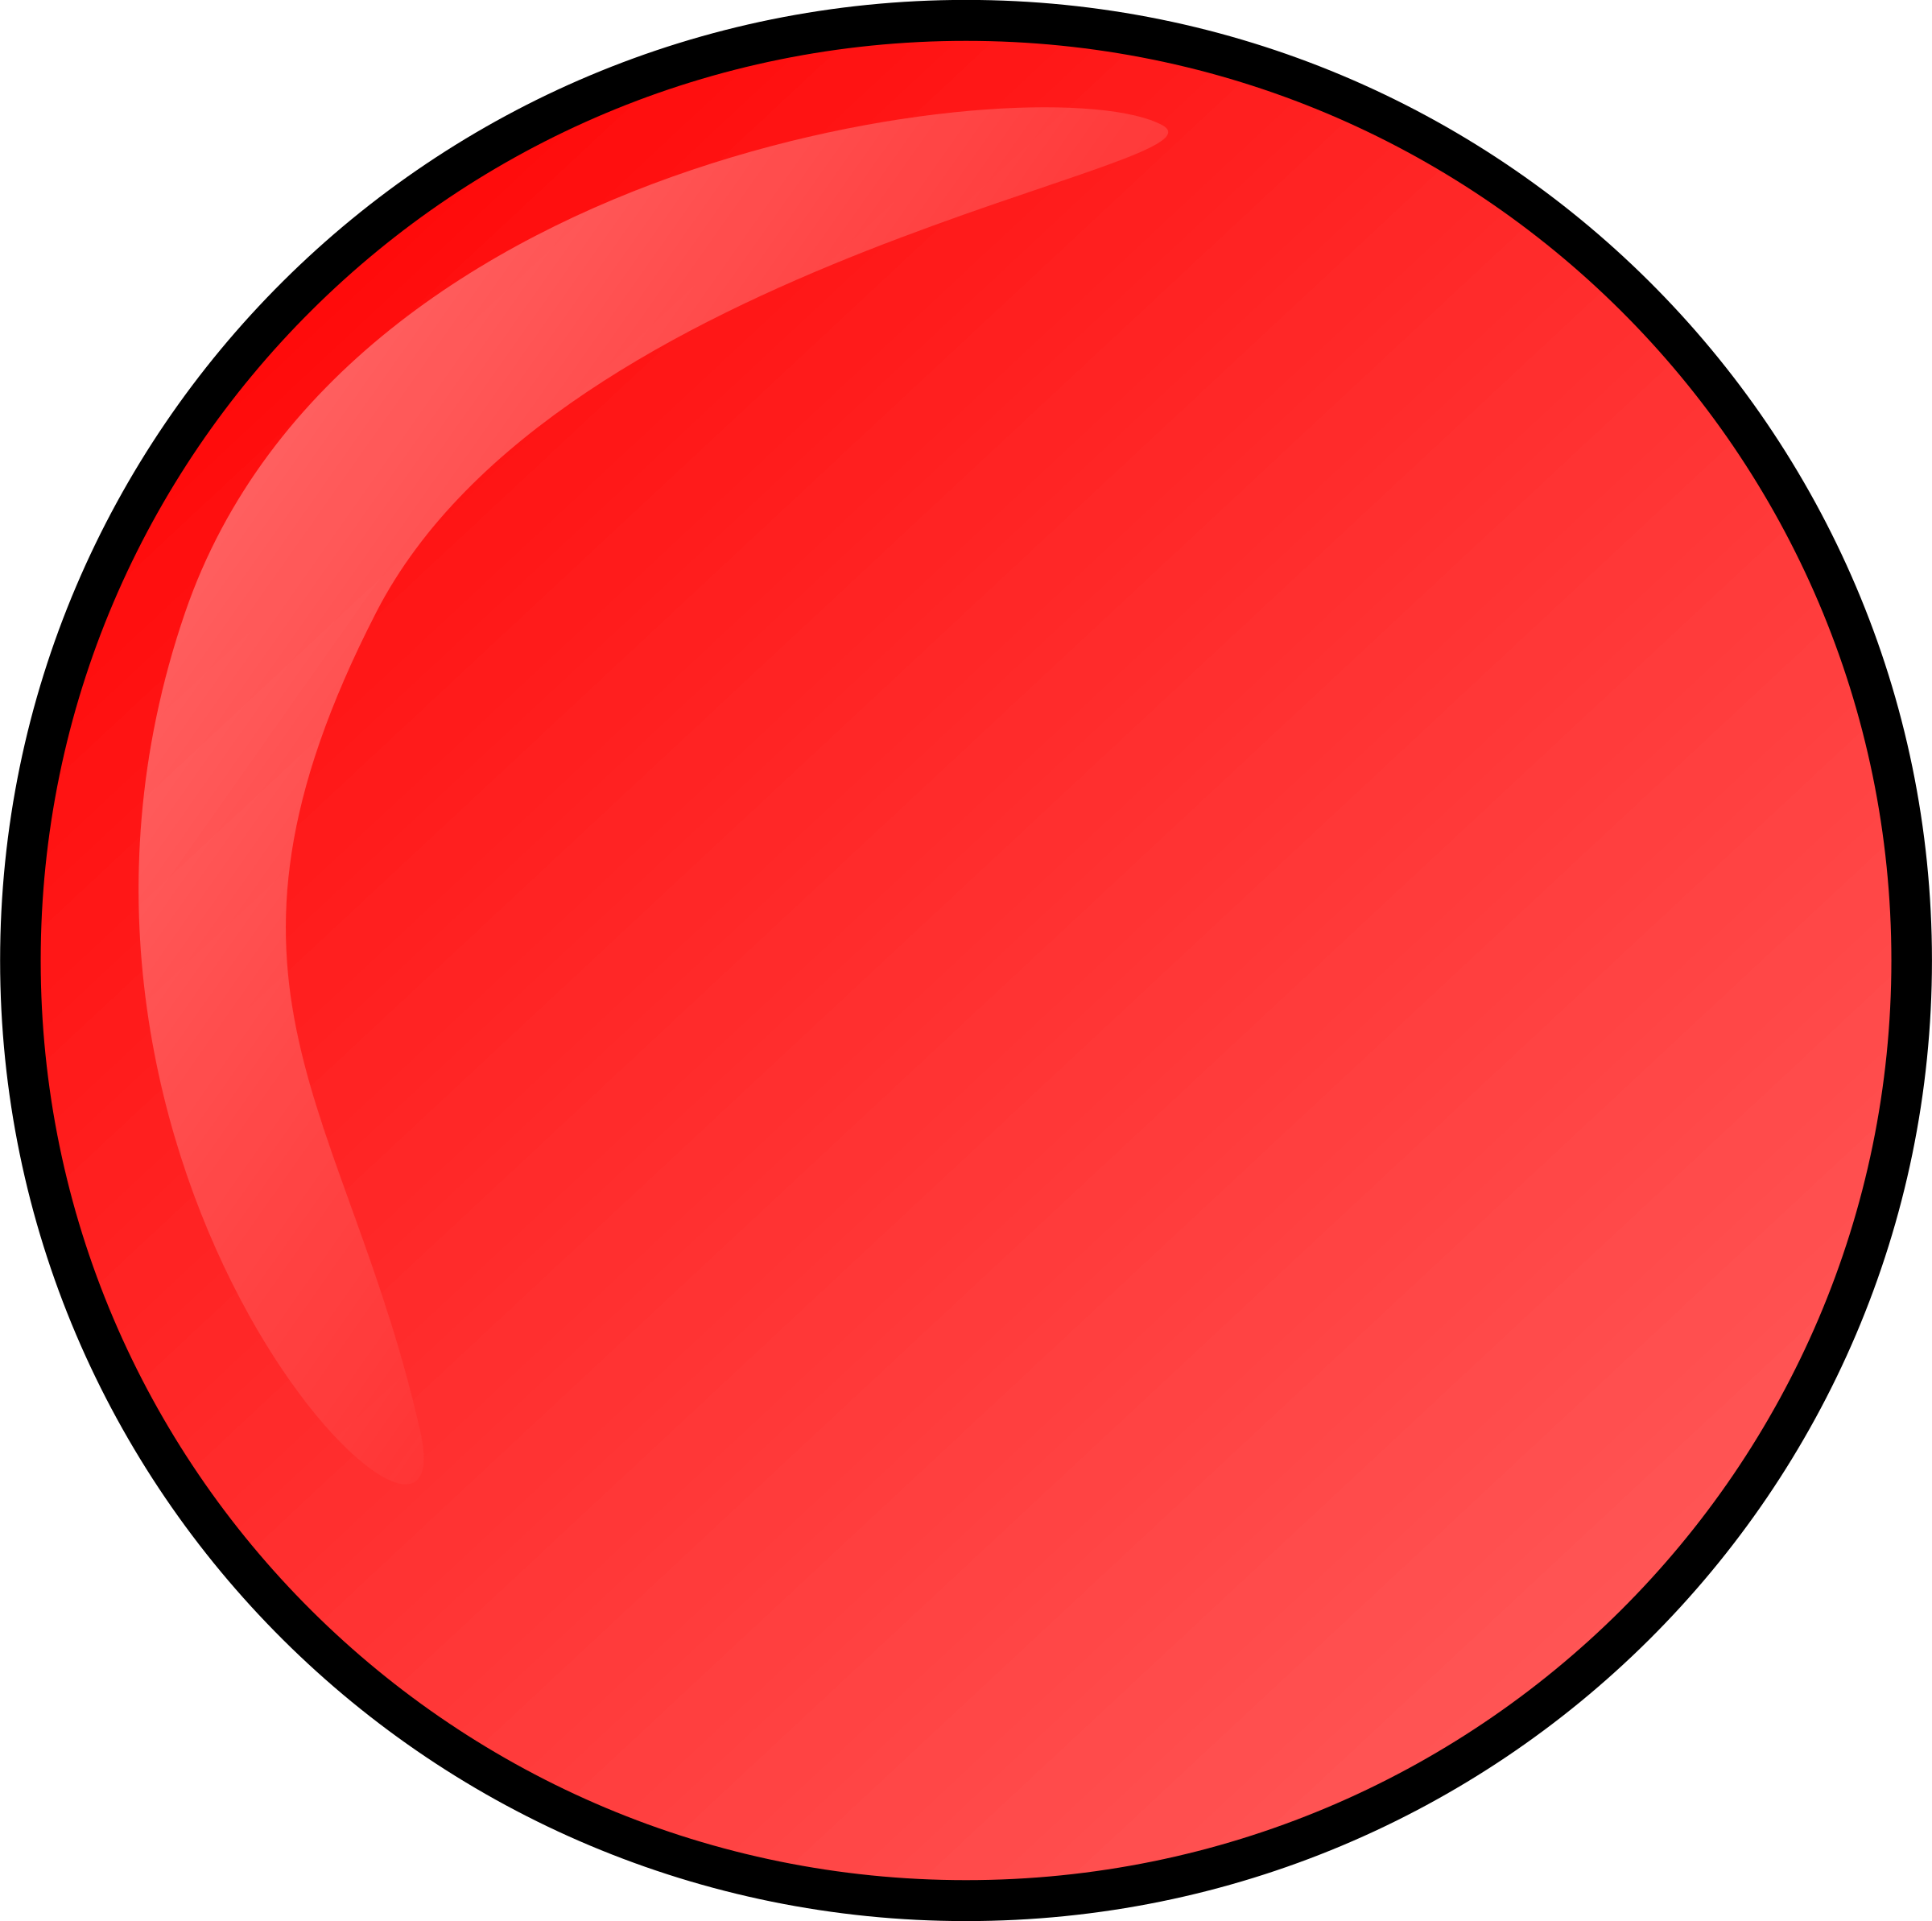 red round button Icons PNG - Free PNG and Icons Downloads